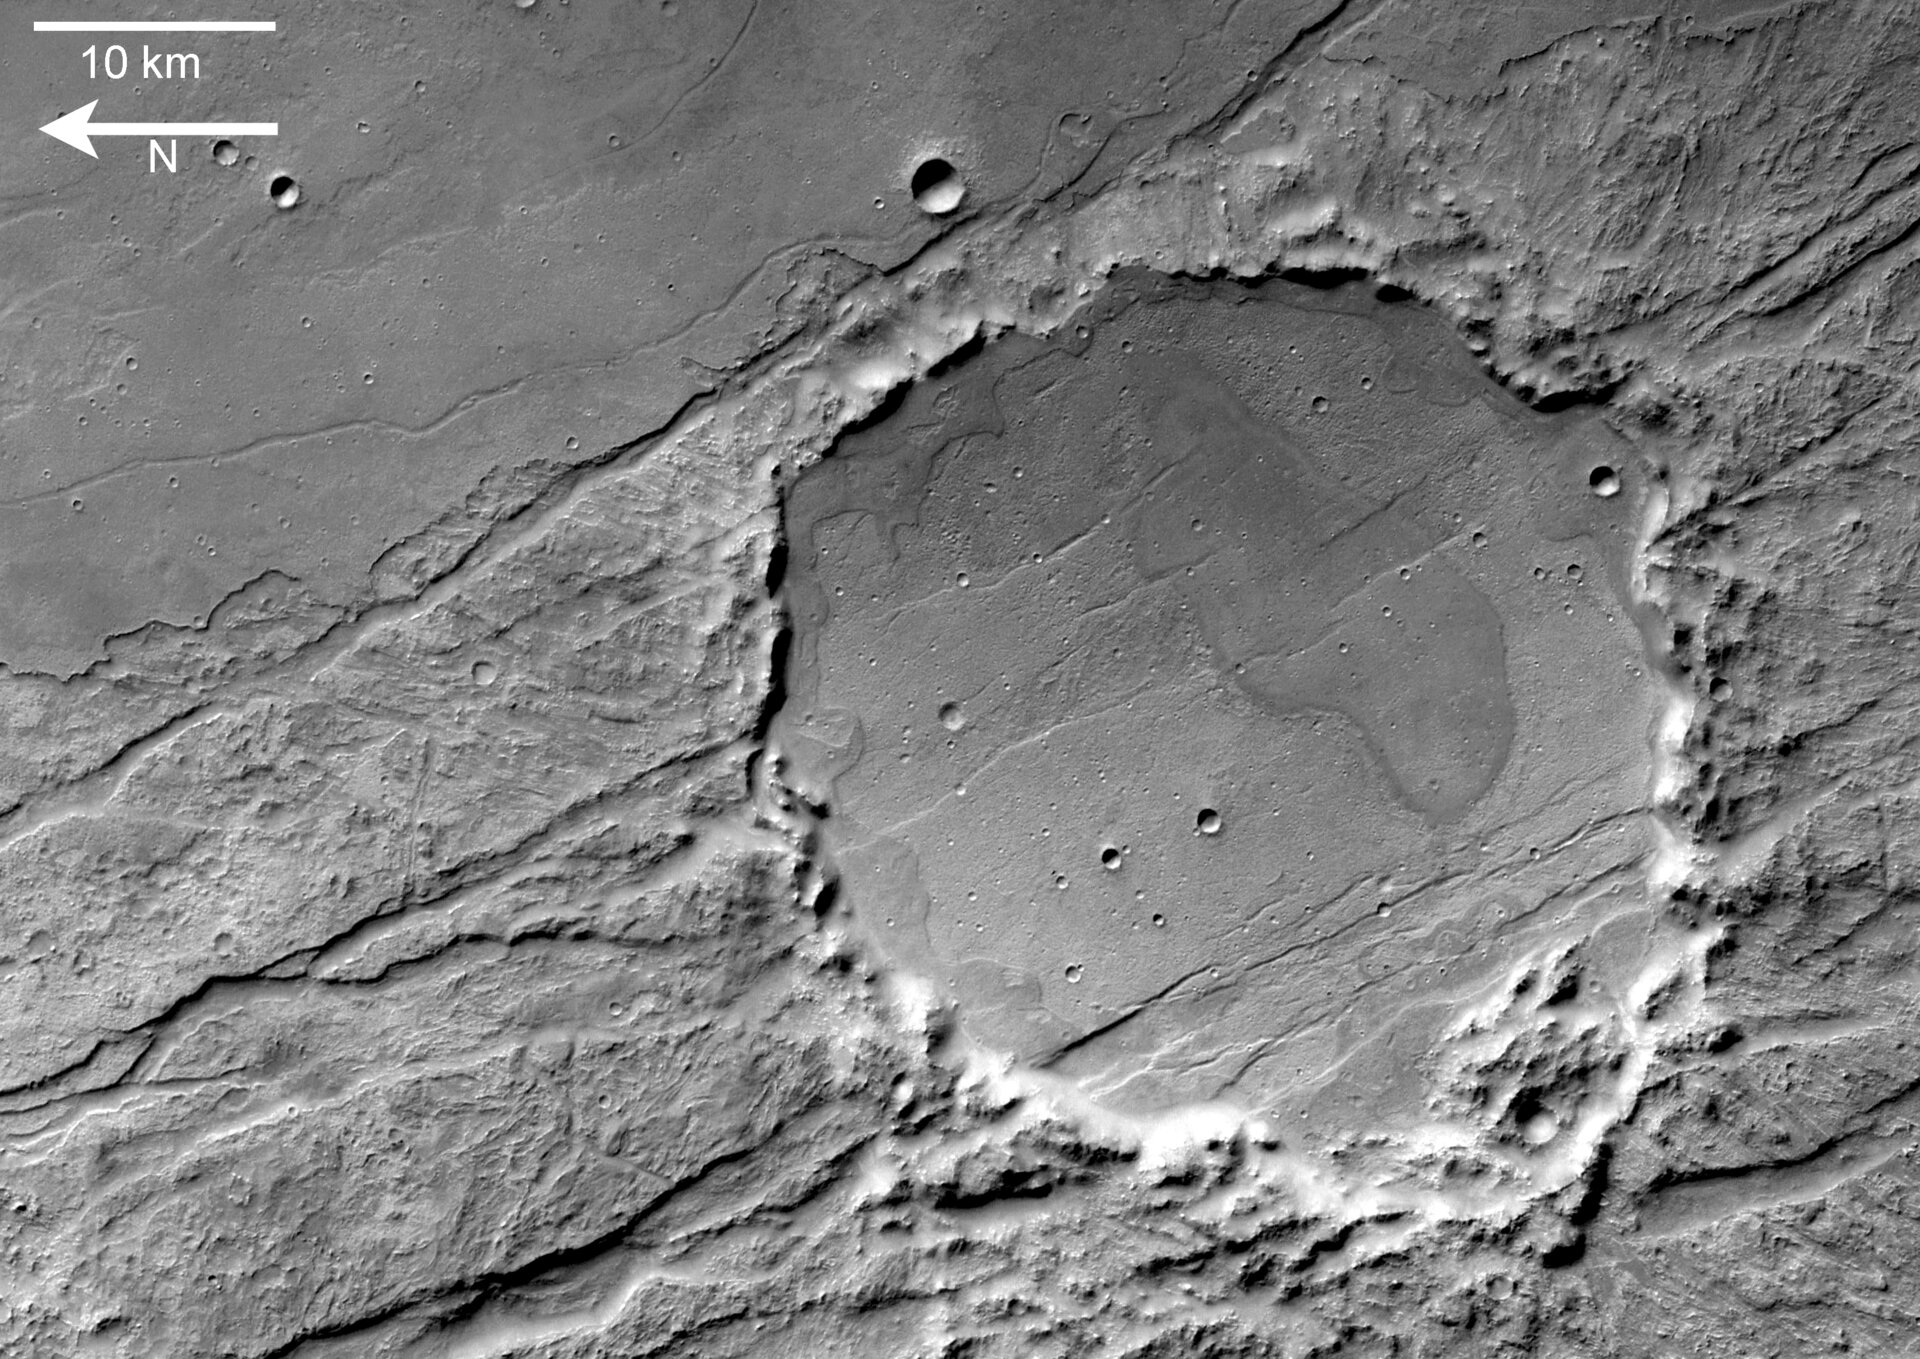 Claritas Fossae crater detailed view,  black and white